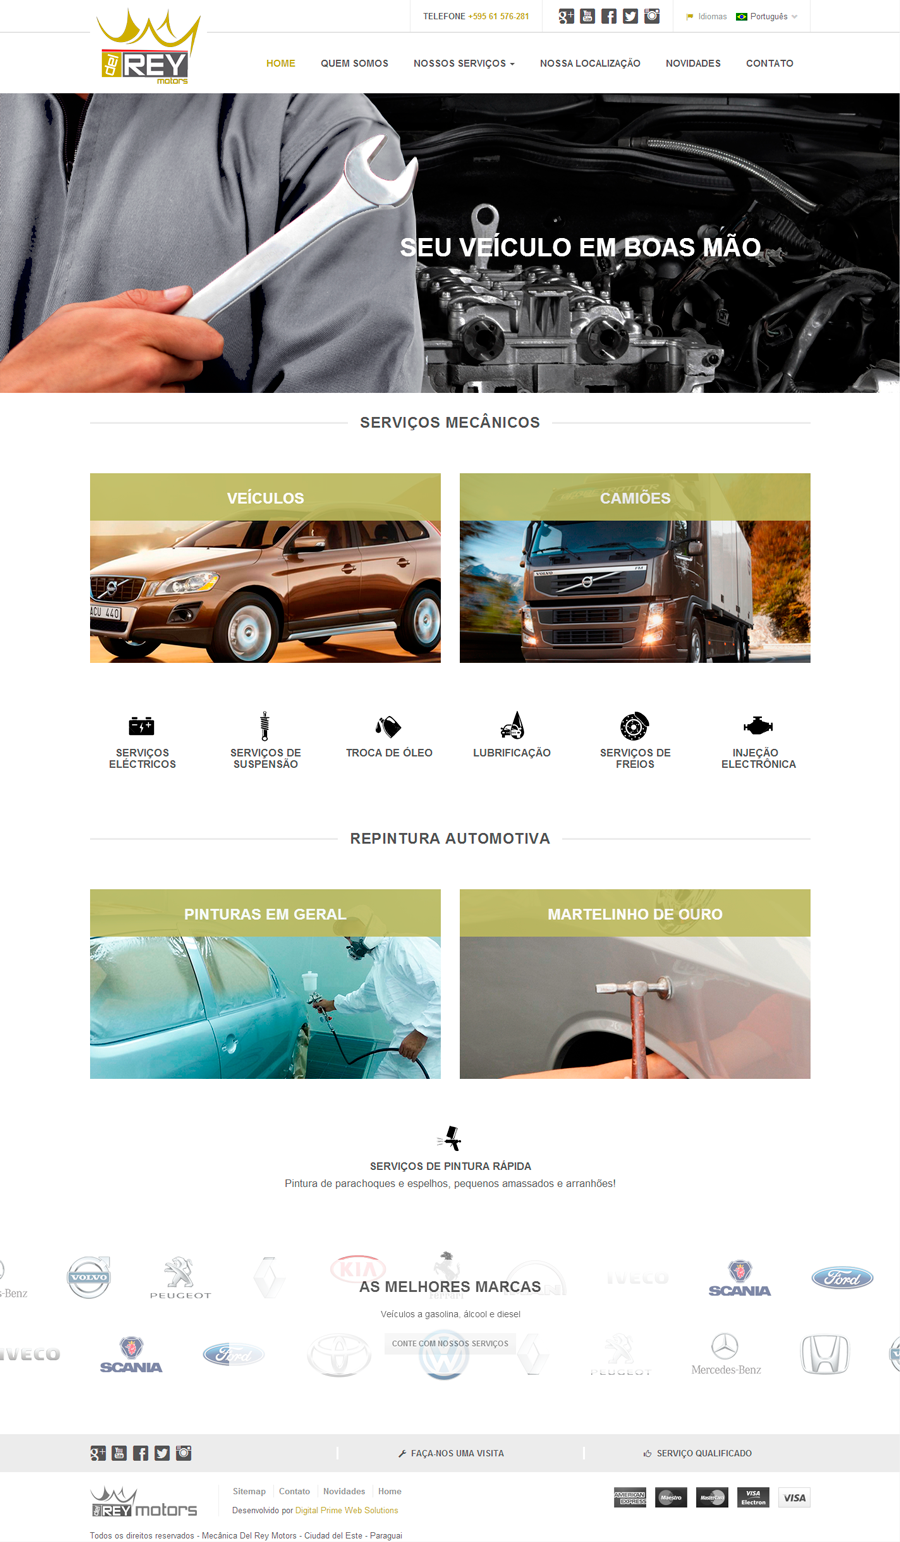 Site Del Rey Motors - Digital Prime Web Solutions - Criação de Sites